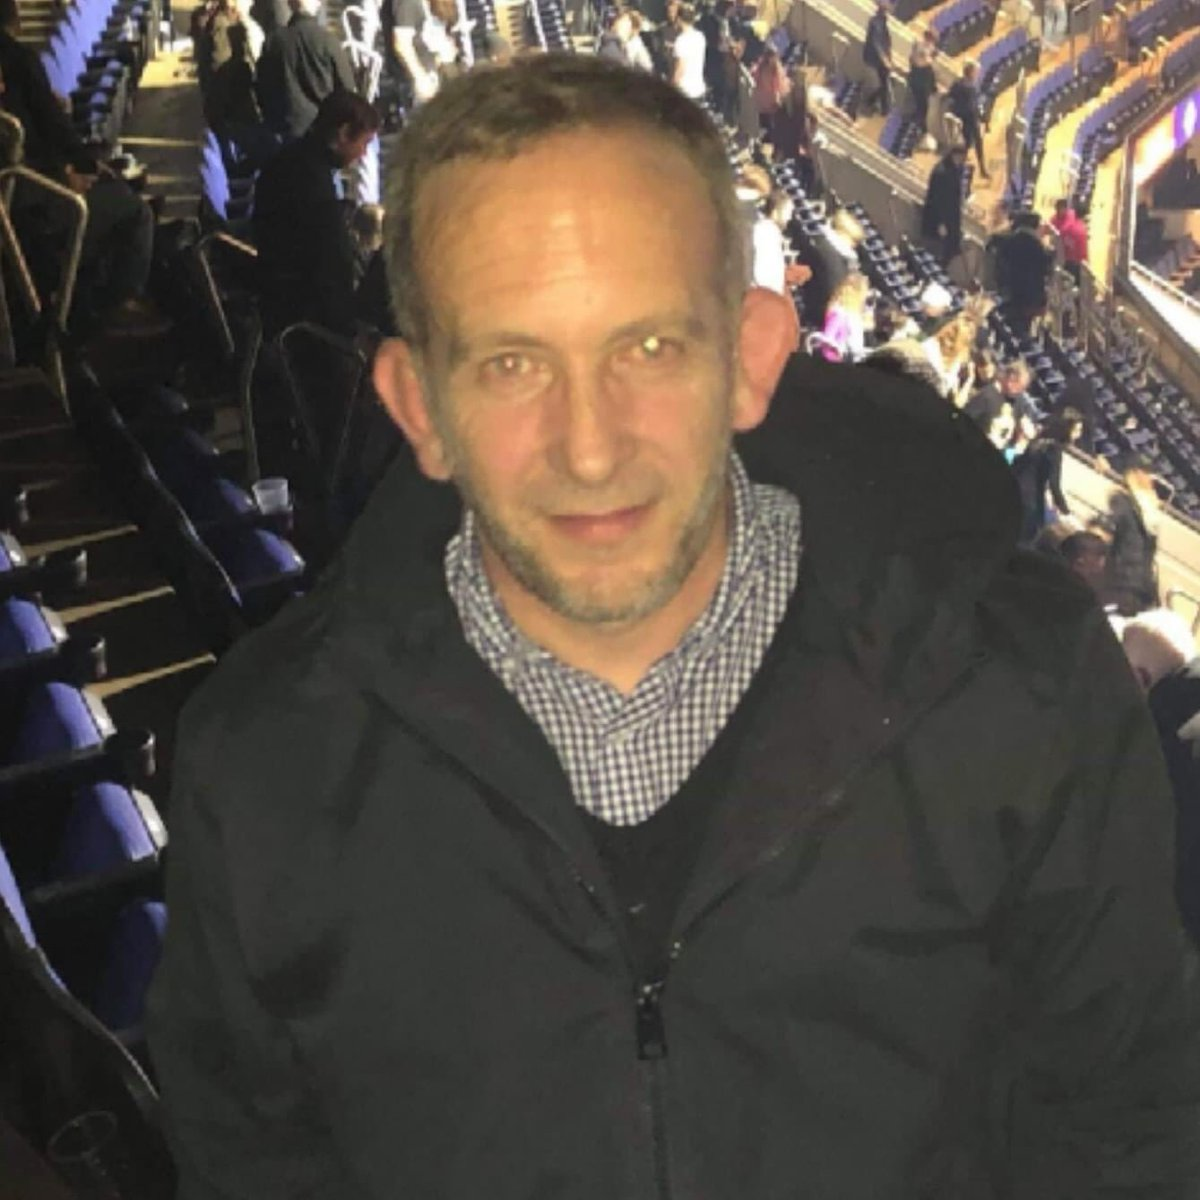 *MISSING - IPSWICH/SUFFOLK - PLEASE SHARE* My dad Steve, 50, has been missing for 48hrs and made no contact with anybody. He's around 6ft with short grey hair (see pictures). Likely to be near #Ipswich or #Felixstowe. LOOK FOR: Silver Toyota Yaris - Reg: EJ53 FXT. DM me if seen.